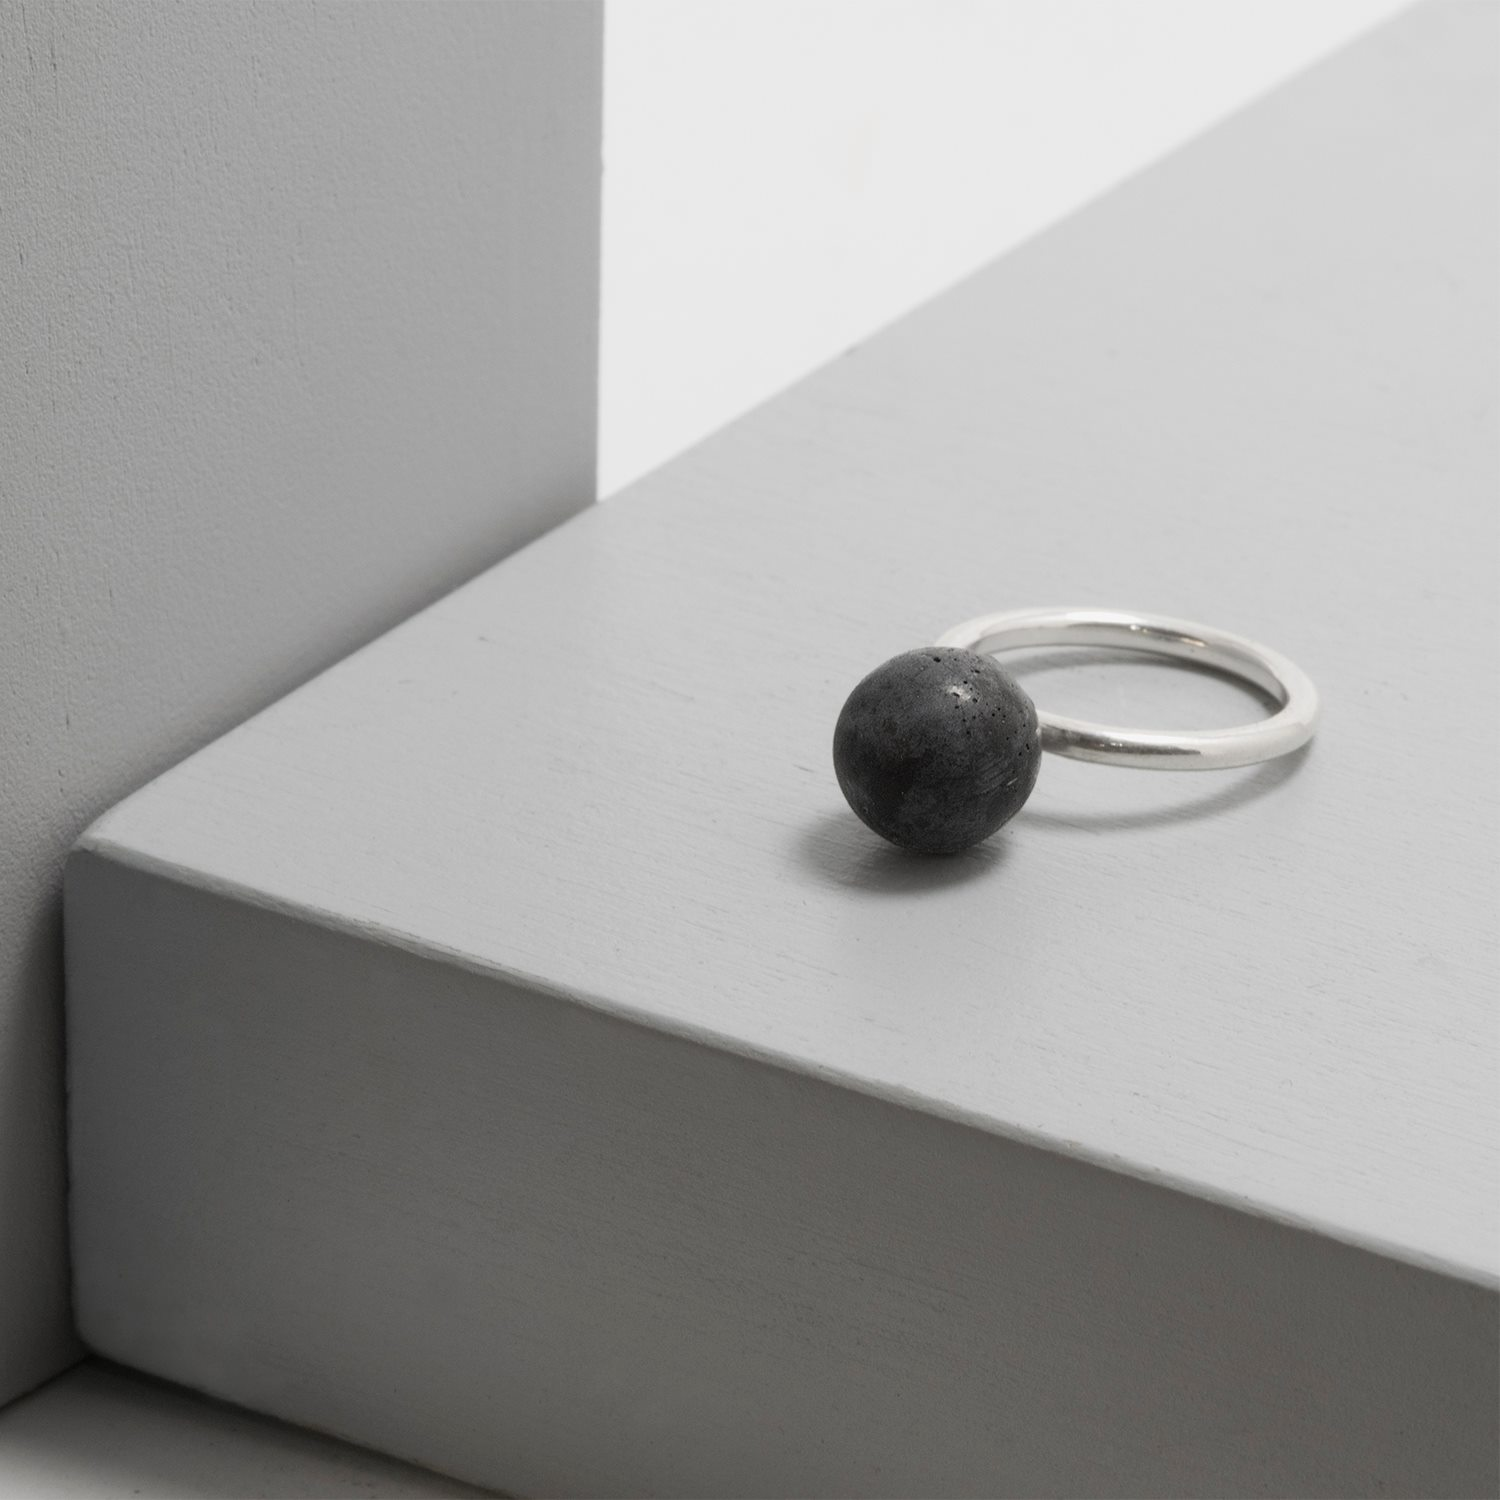 BAZK - Founded by Angela Gomez and Bert van Wijk, BAZK is a Berlin based jewelry & design studio dedicated to the creation of bold, architectural pieces inspired by the urban landscape.Each design reflects our love for clean lines and geometrical forms. The combination of traditional craftmanship and unconventional materials makes every piece a true statement piece.